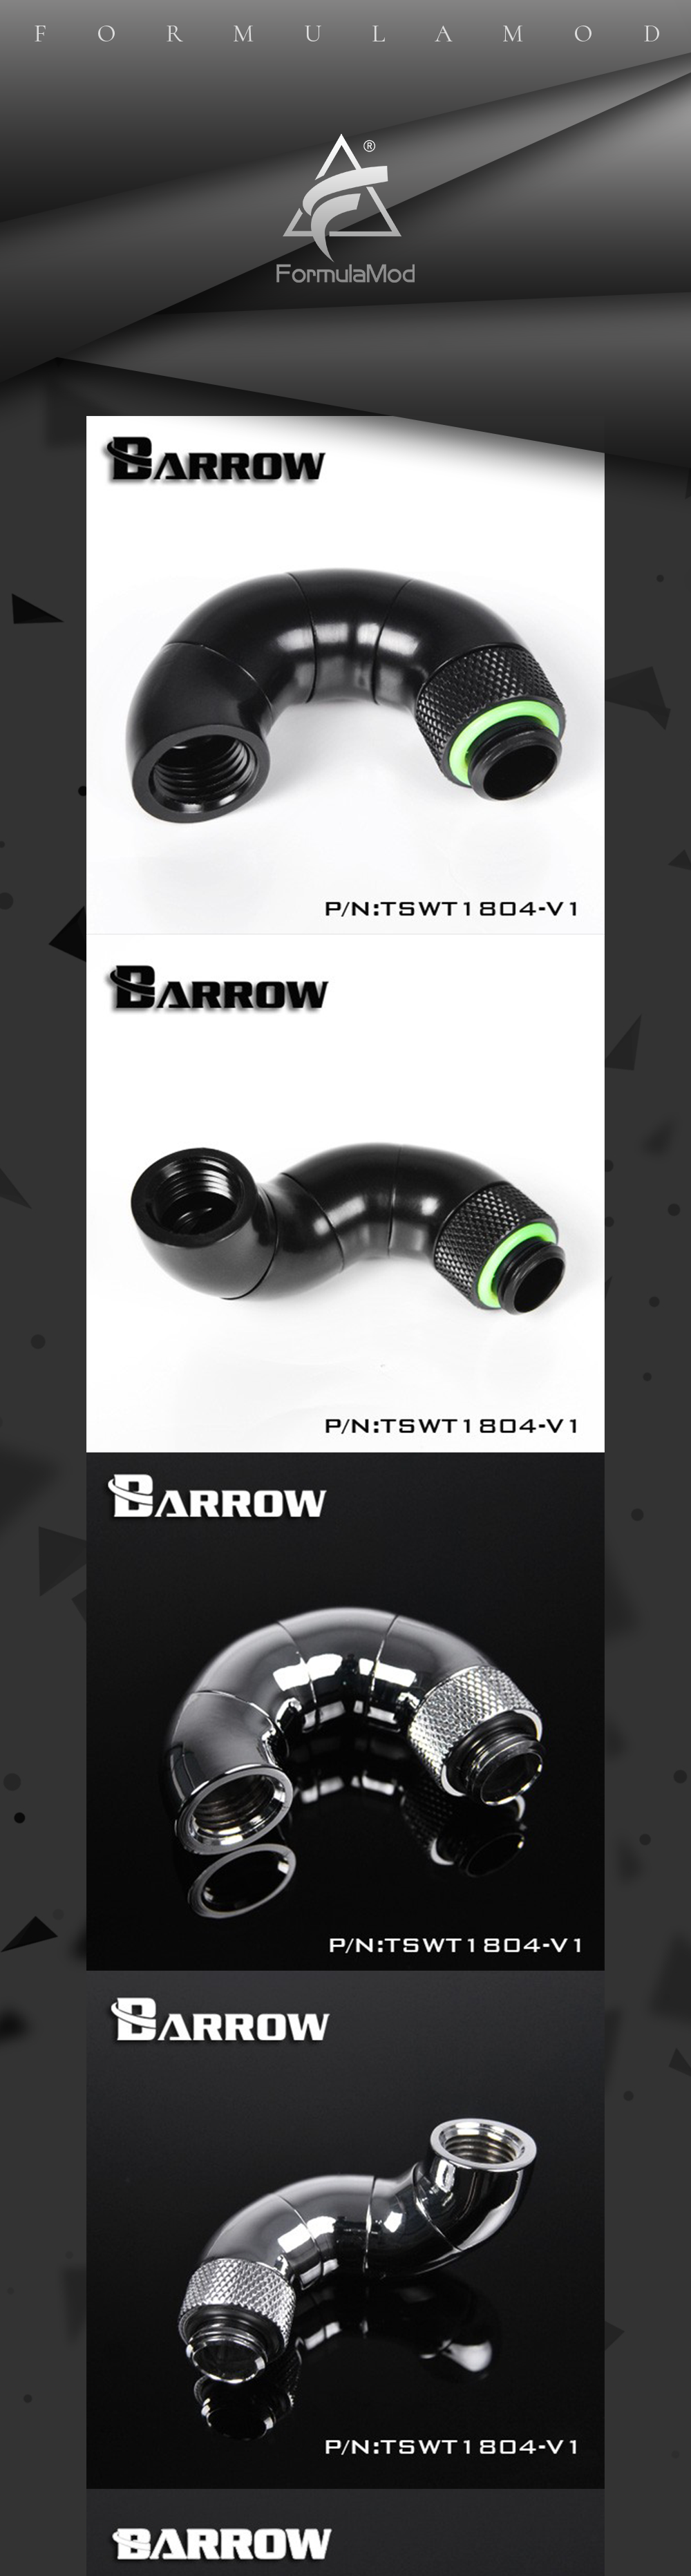 Barrow TSWT1804-V1, 180 Degree Zigzag Rotatable Fittings, Four-stage Male To Female Rotatable Fittings